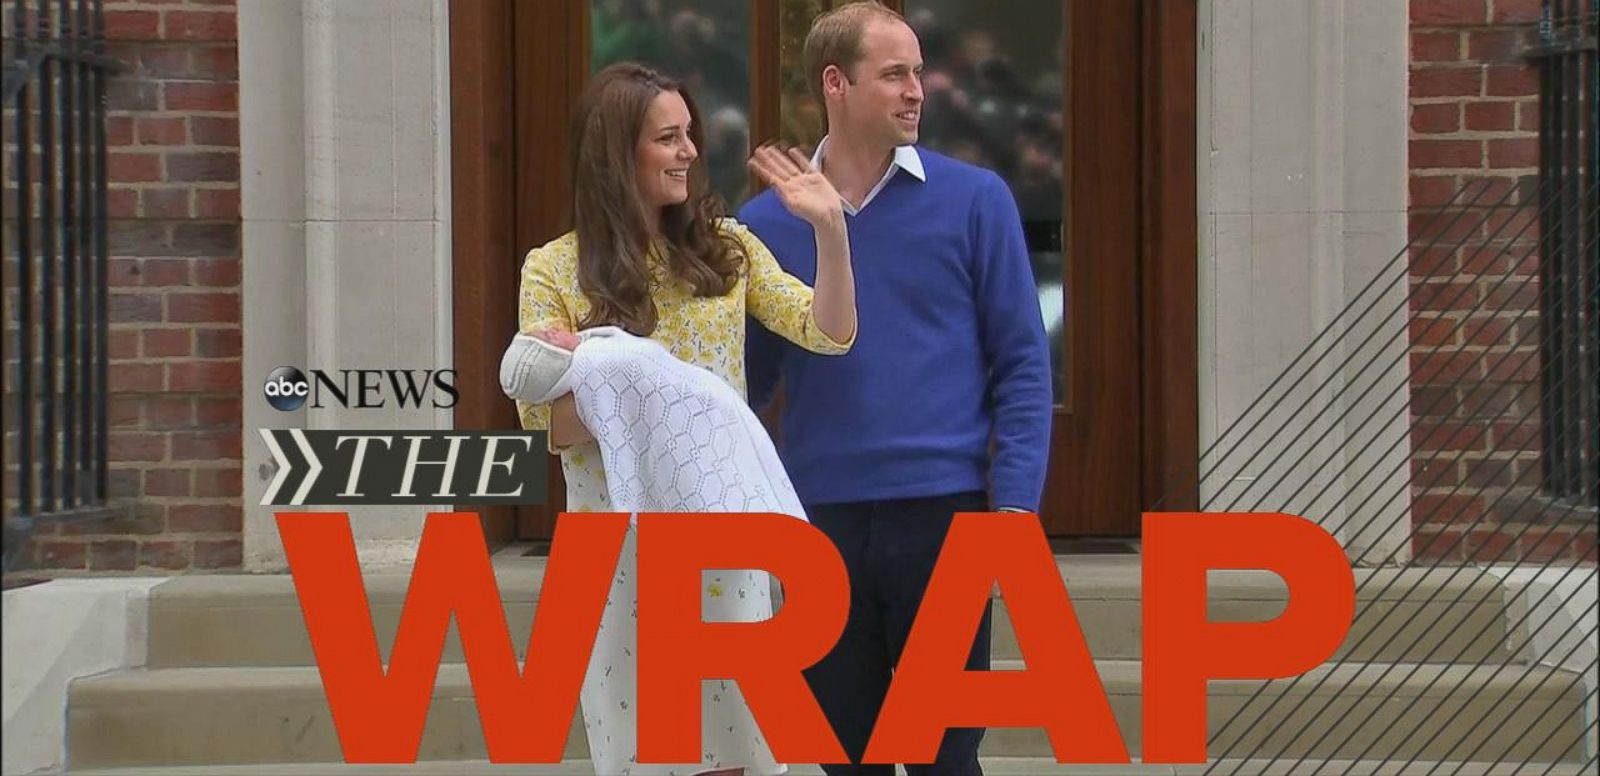 VIDEO: Terror in Texas: Gunman Open Fire at Muhammad Cartoon Drawing Contest, Royal Baby Gets Named Charlotte Elizabeth Diana, Nation Guard Leaves Baltimore.